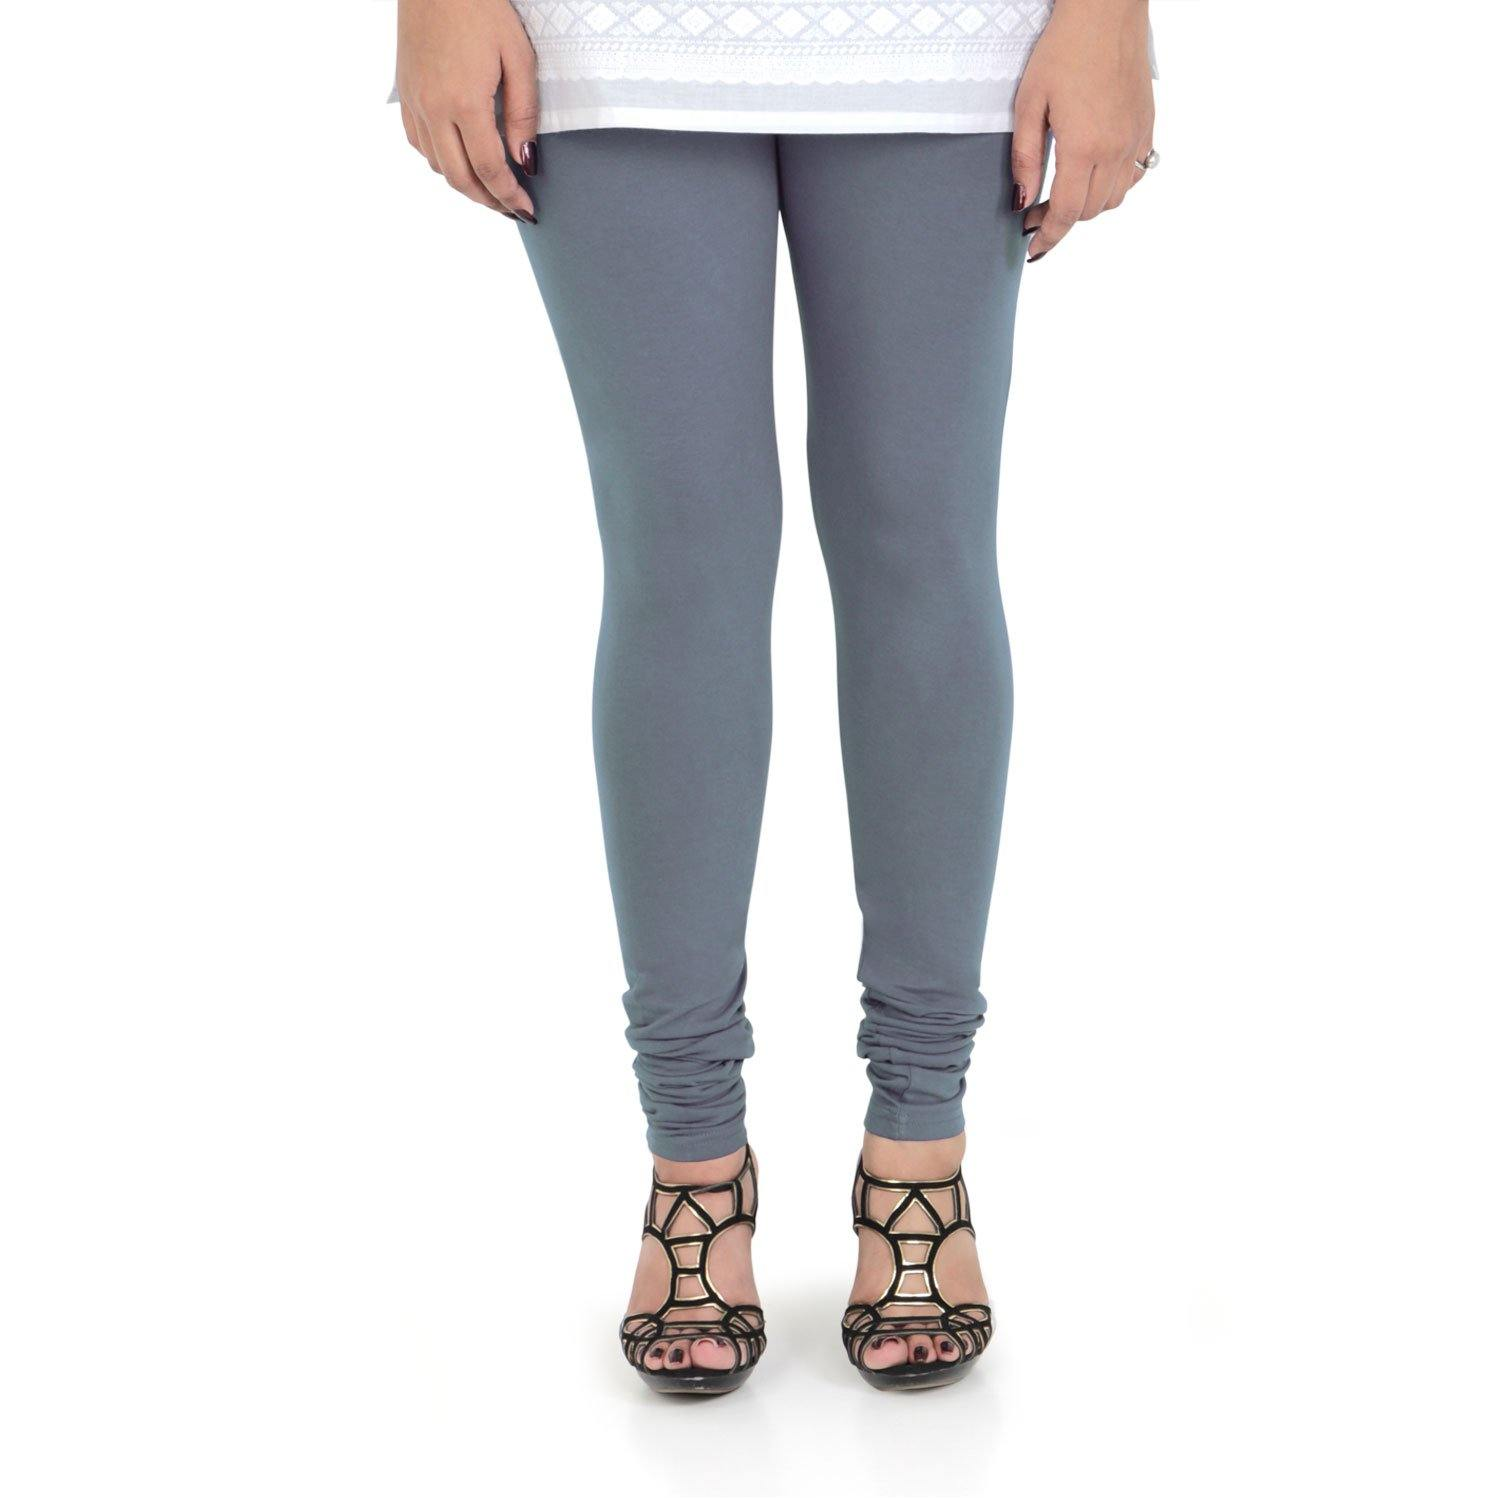 Vami Women's Cotton Stretchable Churidar Legging - Wild Dove